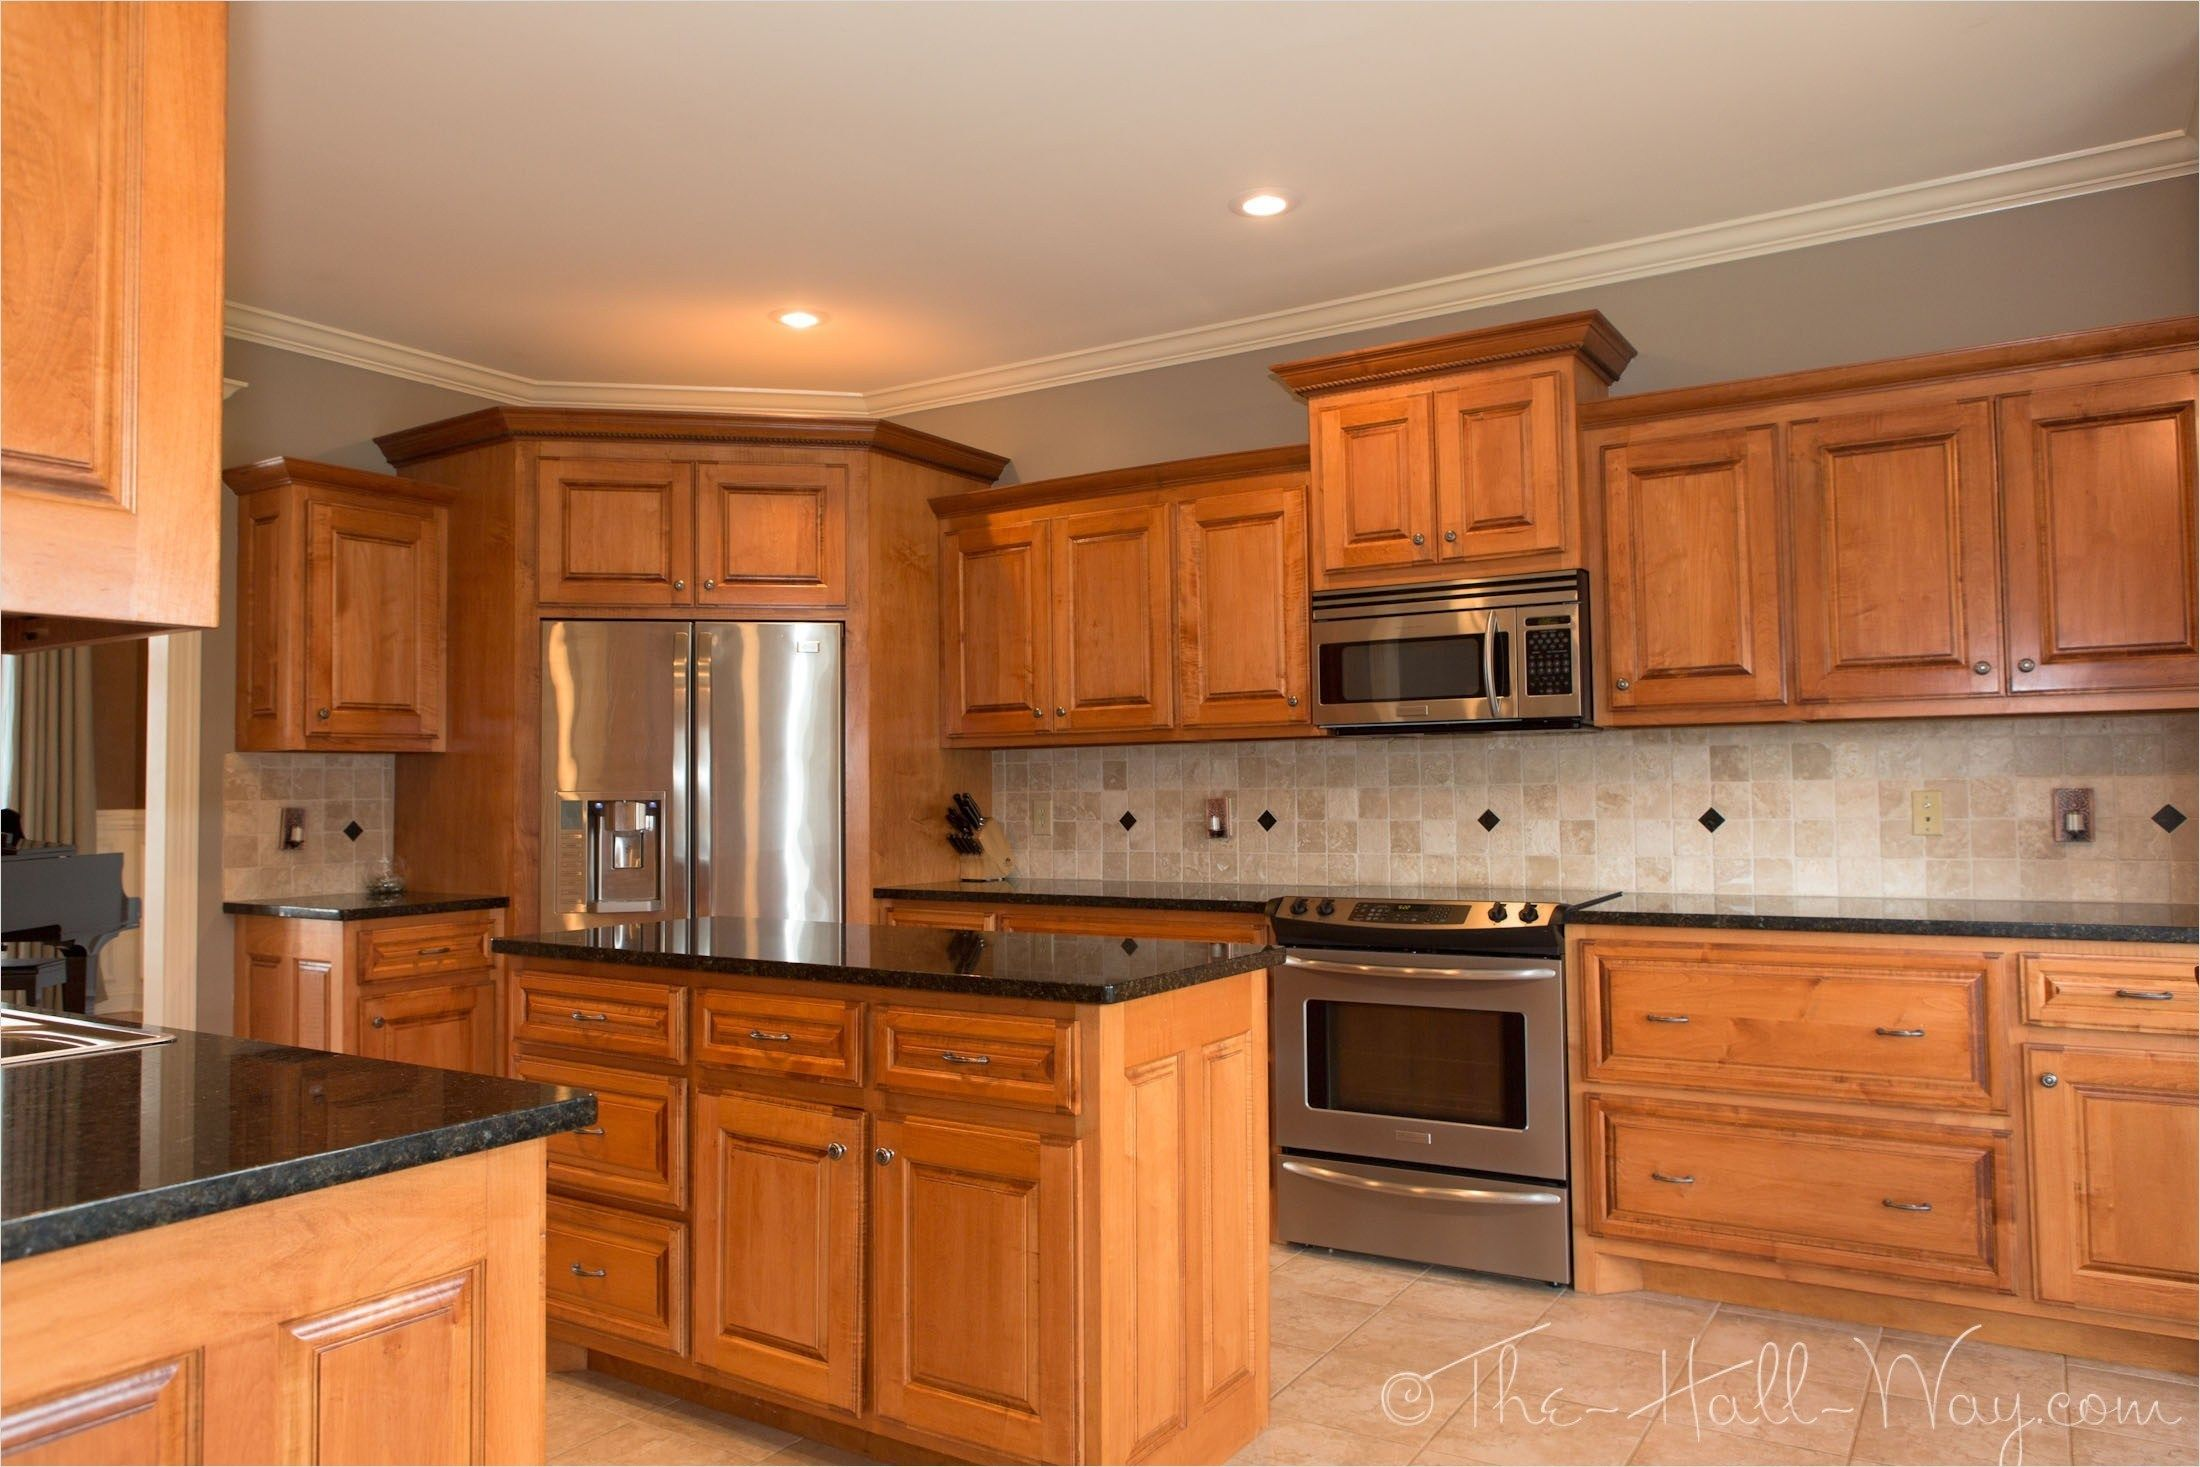 kitchen with maple cabinets color ideas 6 in 2020 ... on Natural Maple Kitchen Backsplash Ideas With Maple Cabinets  id=92575